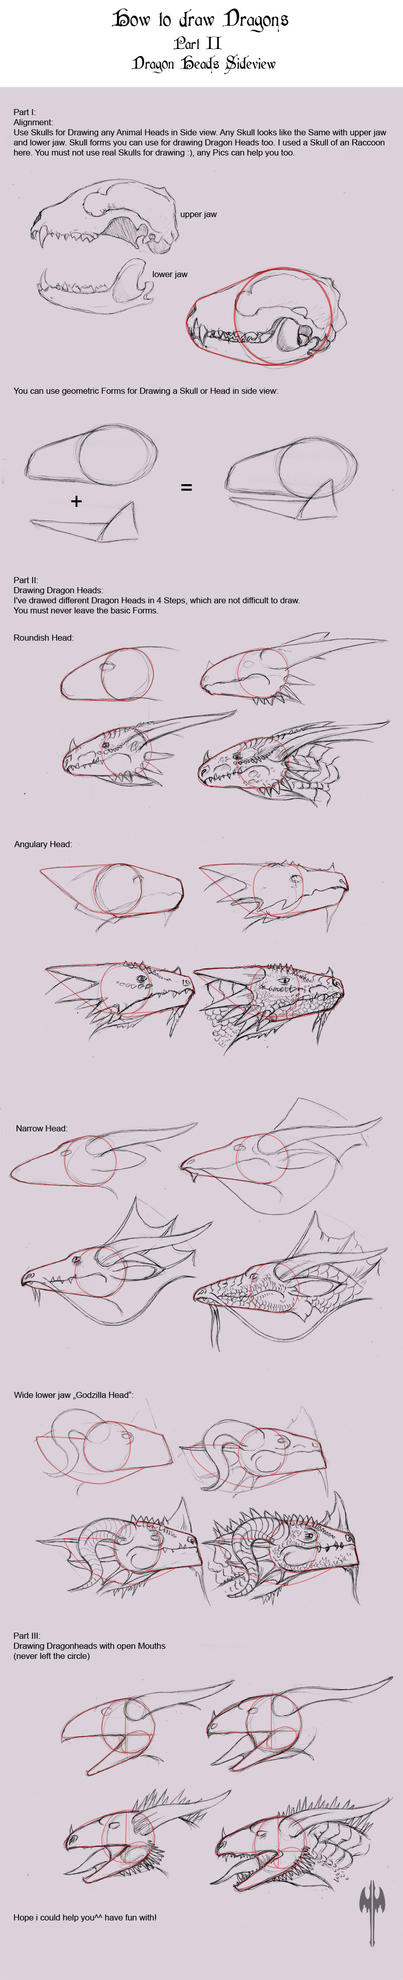 How to Draw Dragons II by Sheranuva